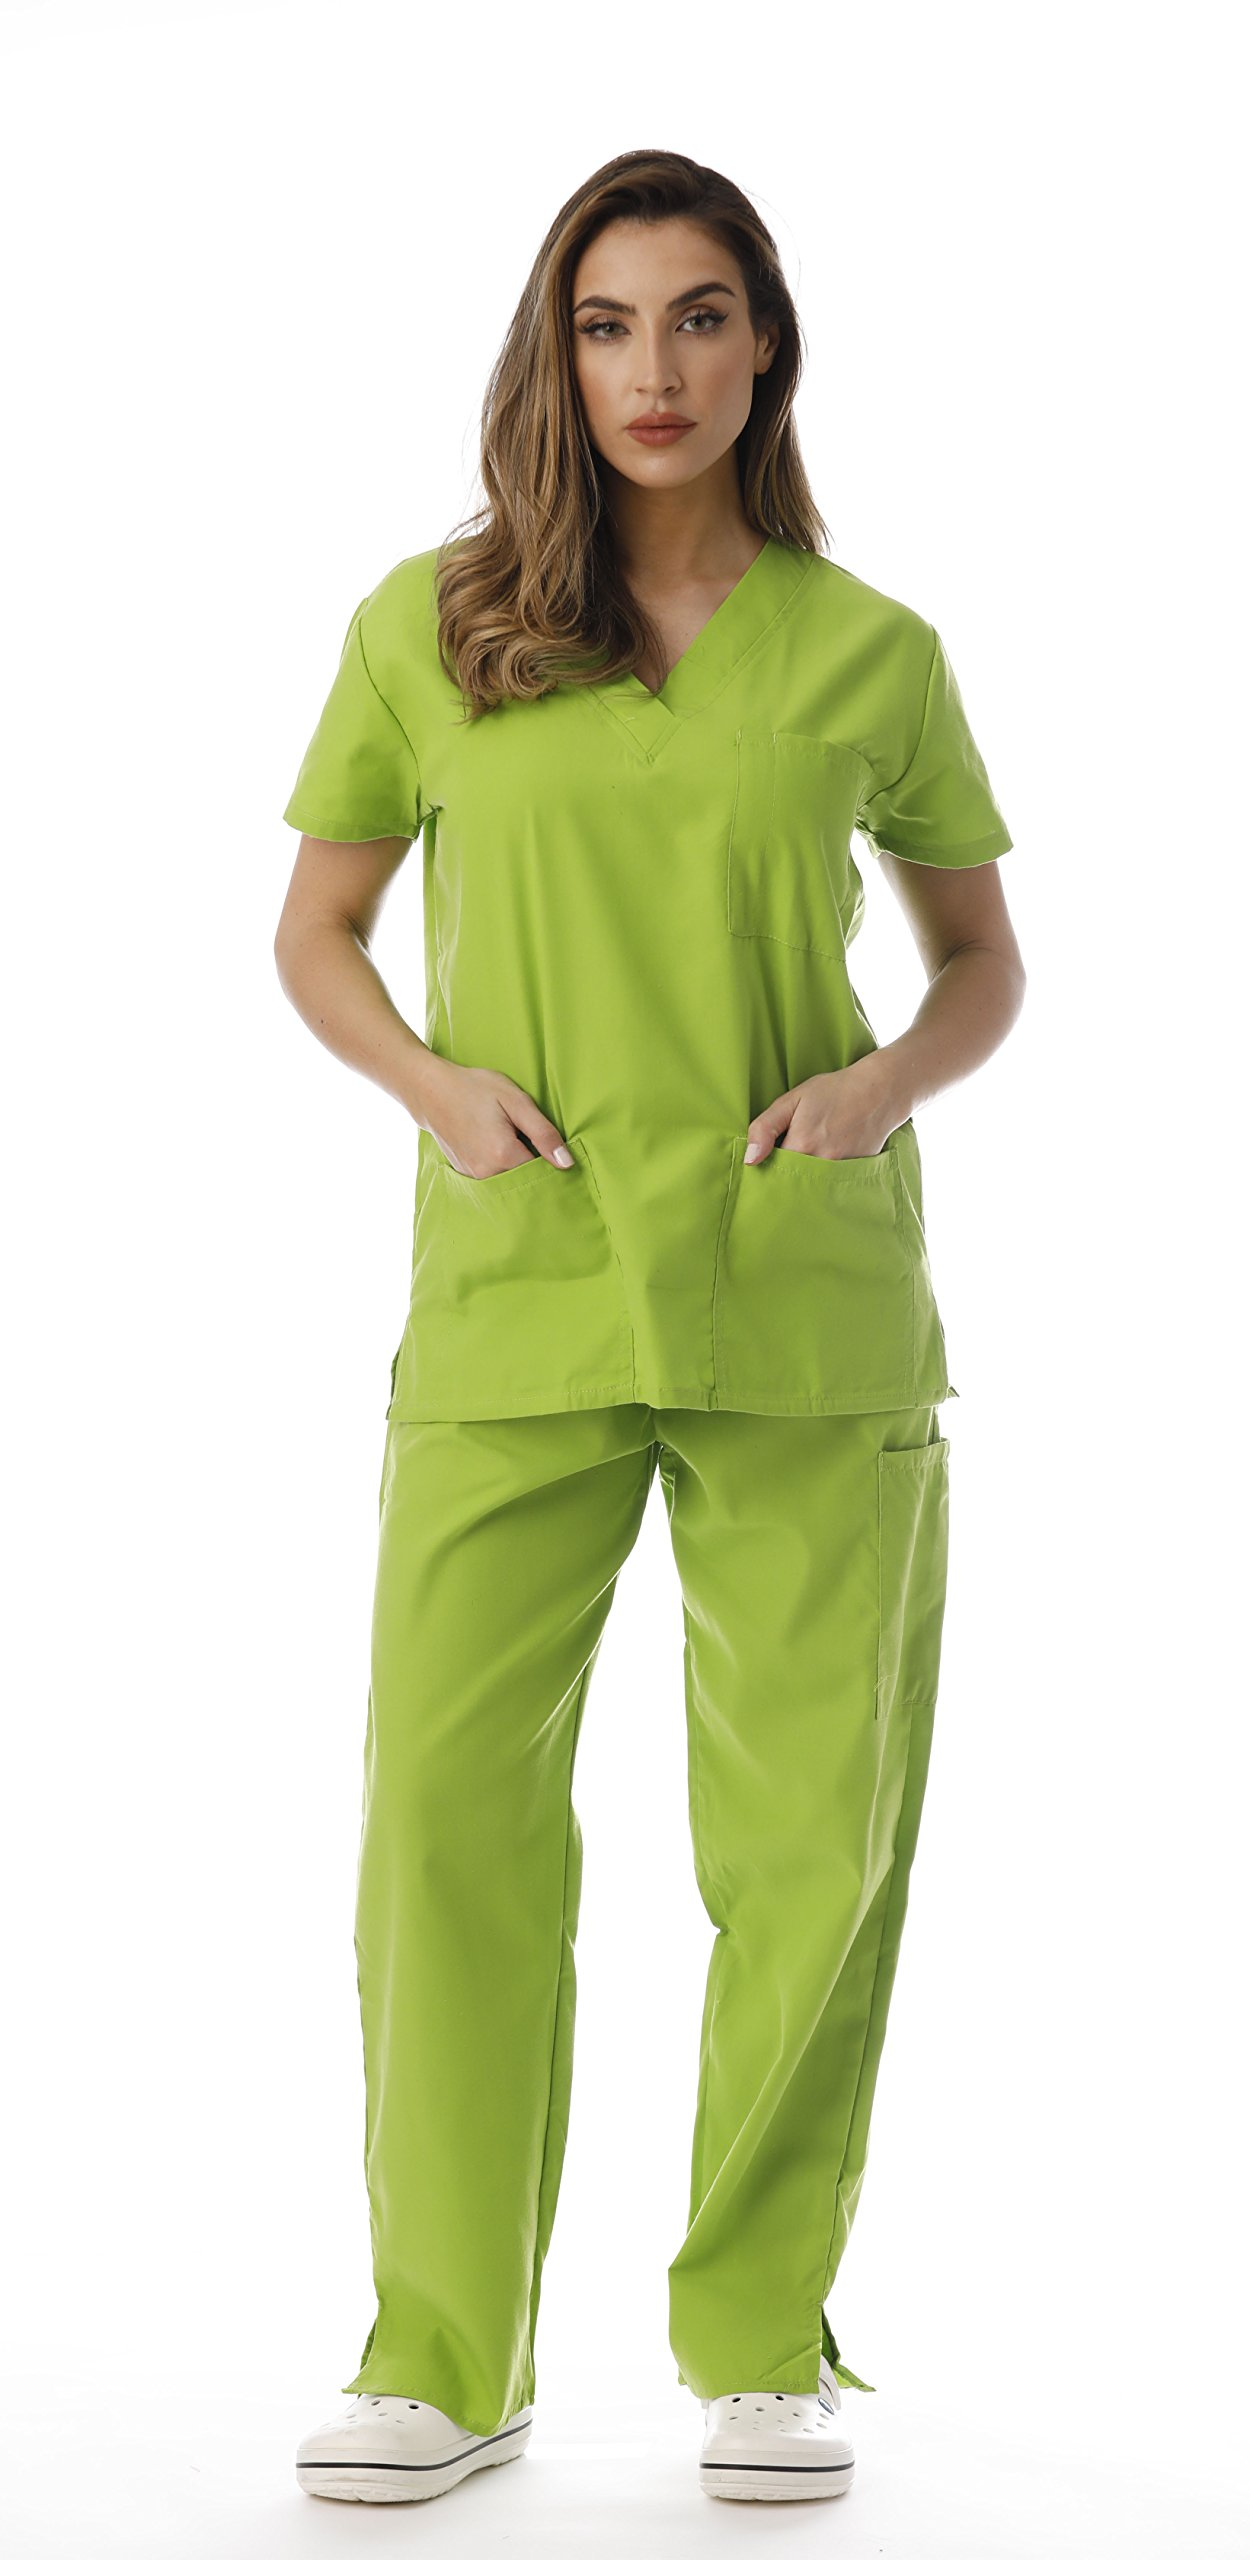 Just Love Women's Scrub Sets 22222V-Lime-XS